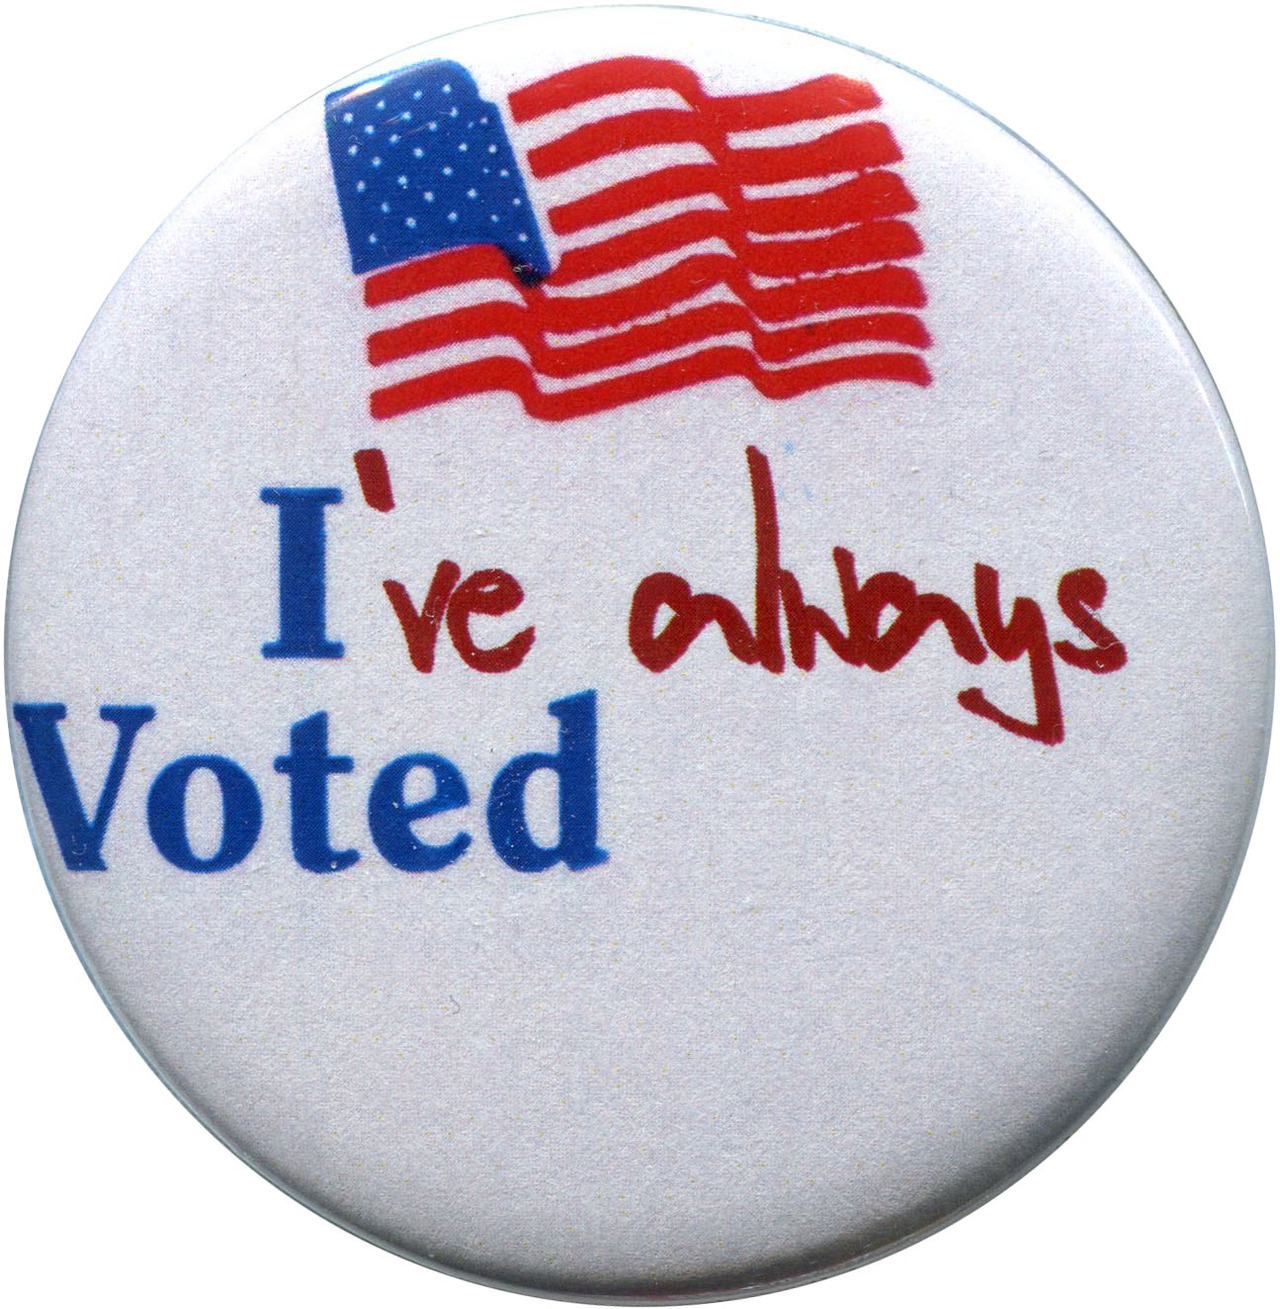 """I've always voted"" available from http://antieuclid.com/i-ve-always-voted.html"